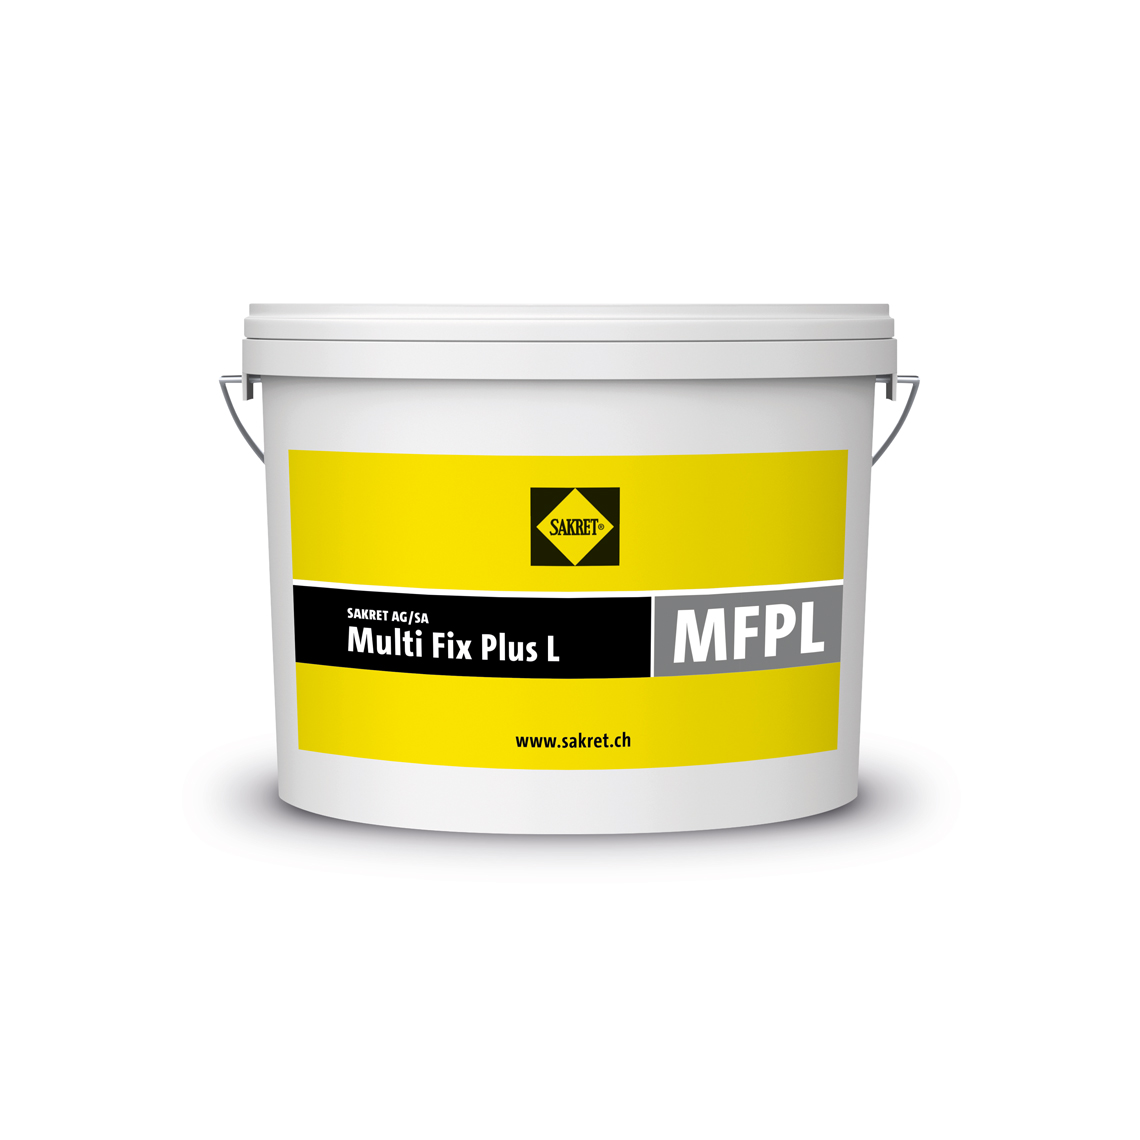 Produktbild | Multi Fix Plus L MFPL | SAKRET